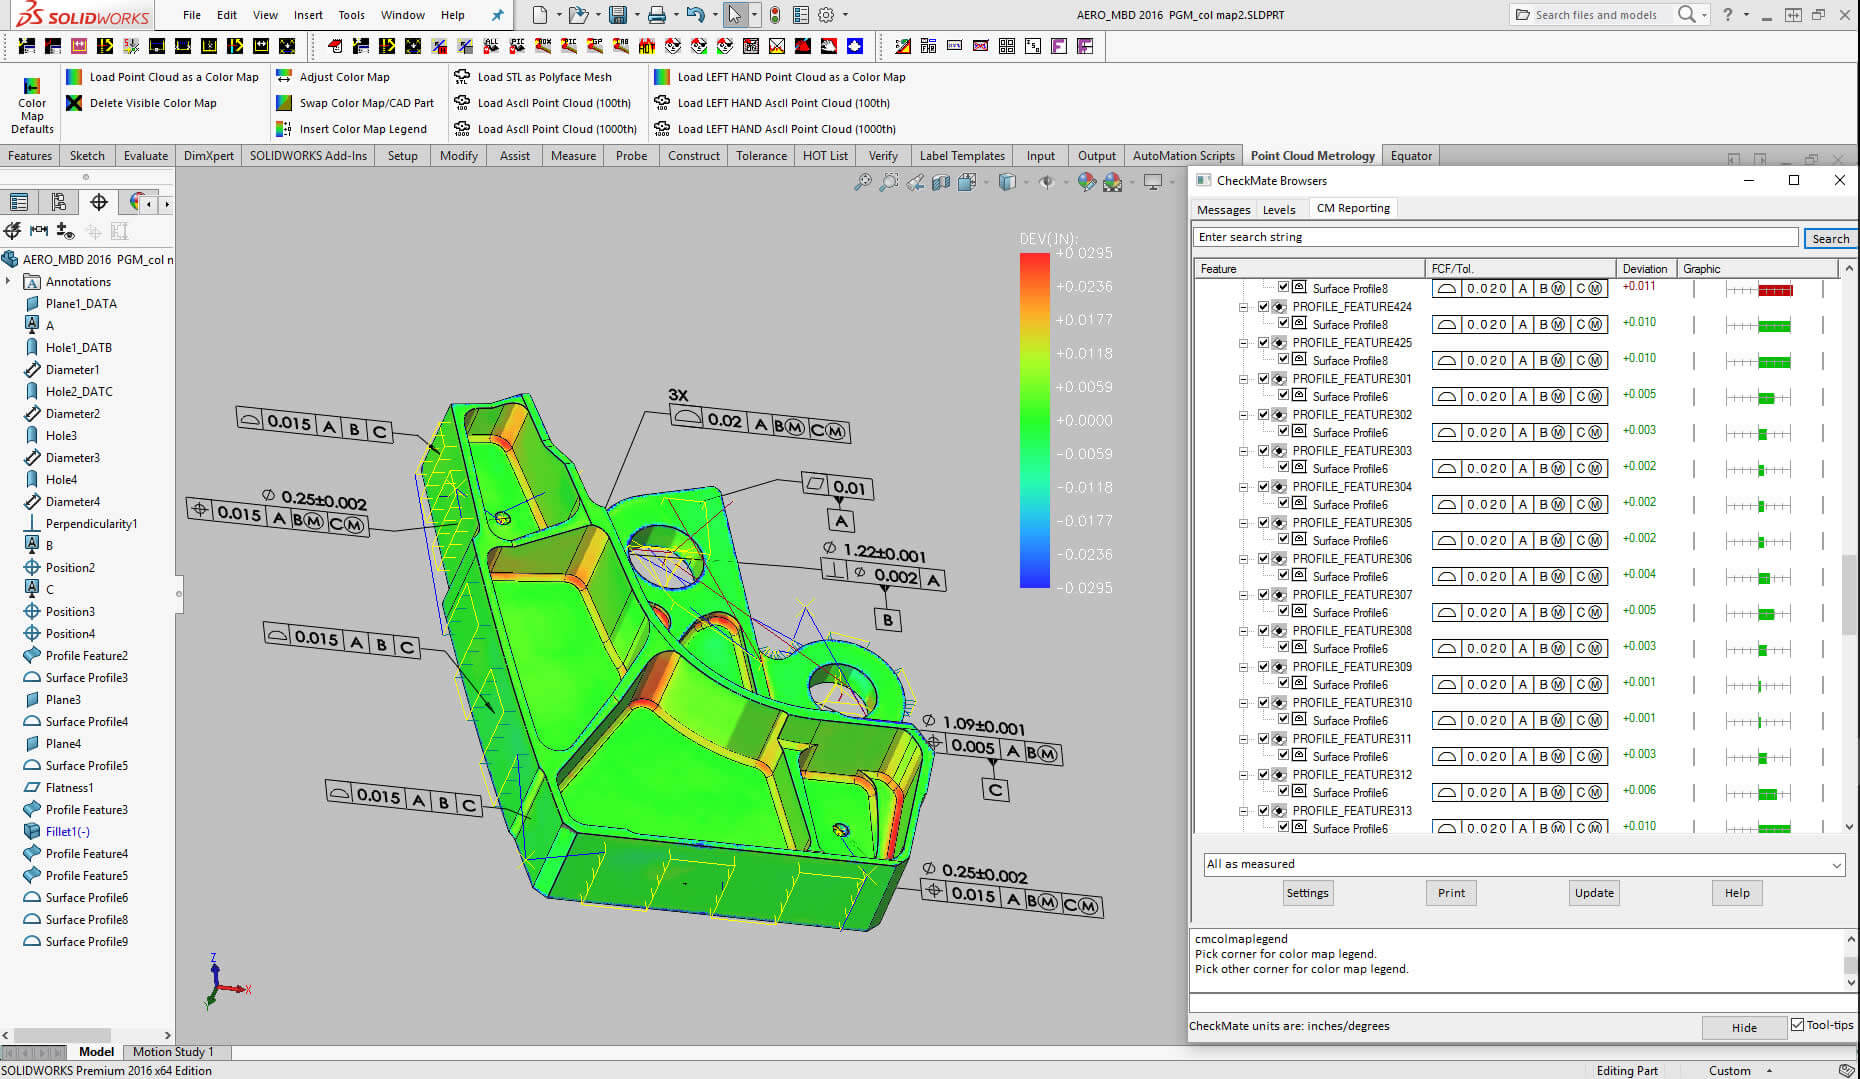 CheckMate for SOLIDWORKS scan data